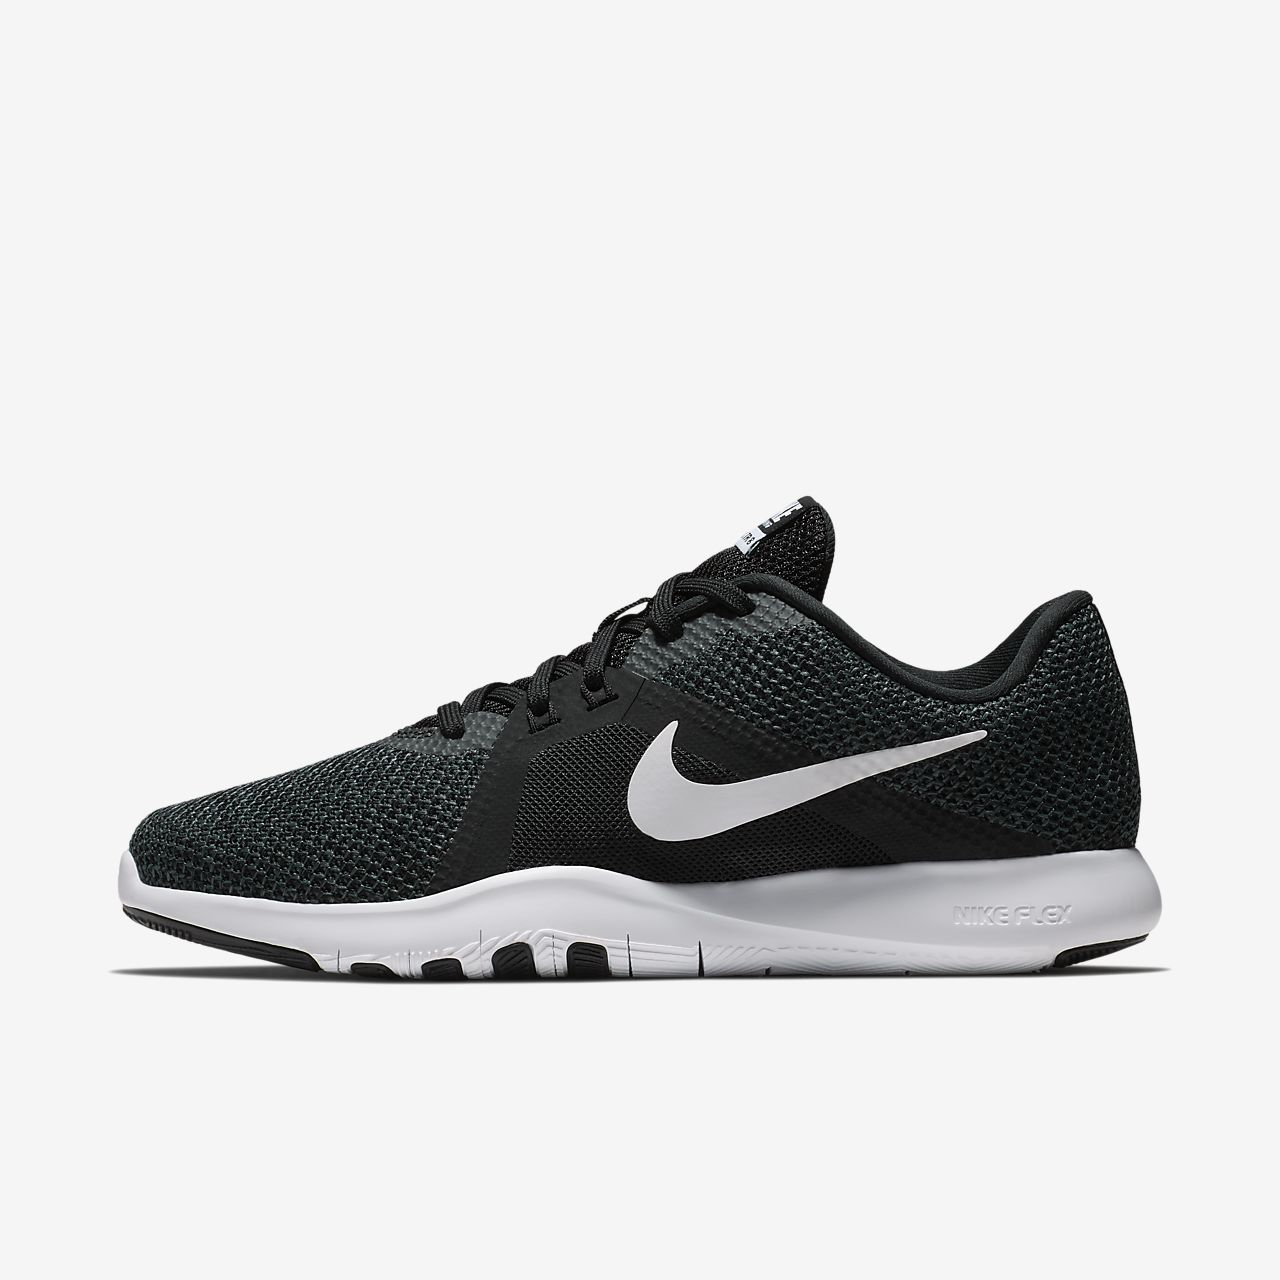 7753185de45259 Nike Flex TR8 Women s Training Shoe. Nike.com